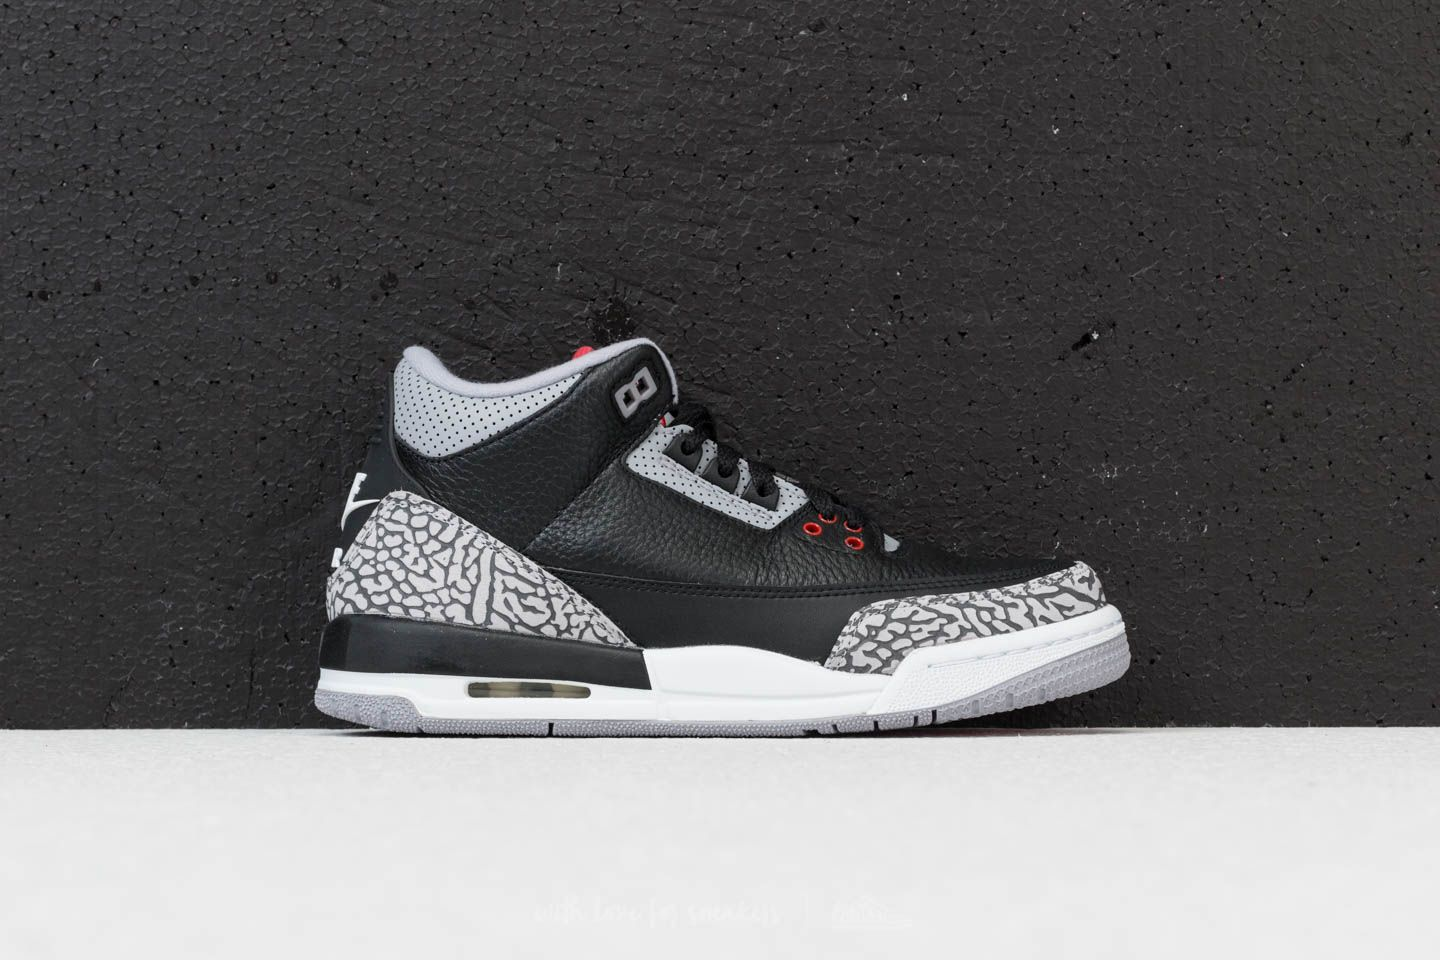 finest selection 393f6 170e1 Air Jordan 3 Retro OG BG Black  Fire Red-Cement Grey at a great